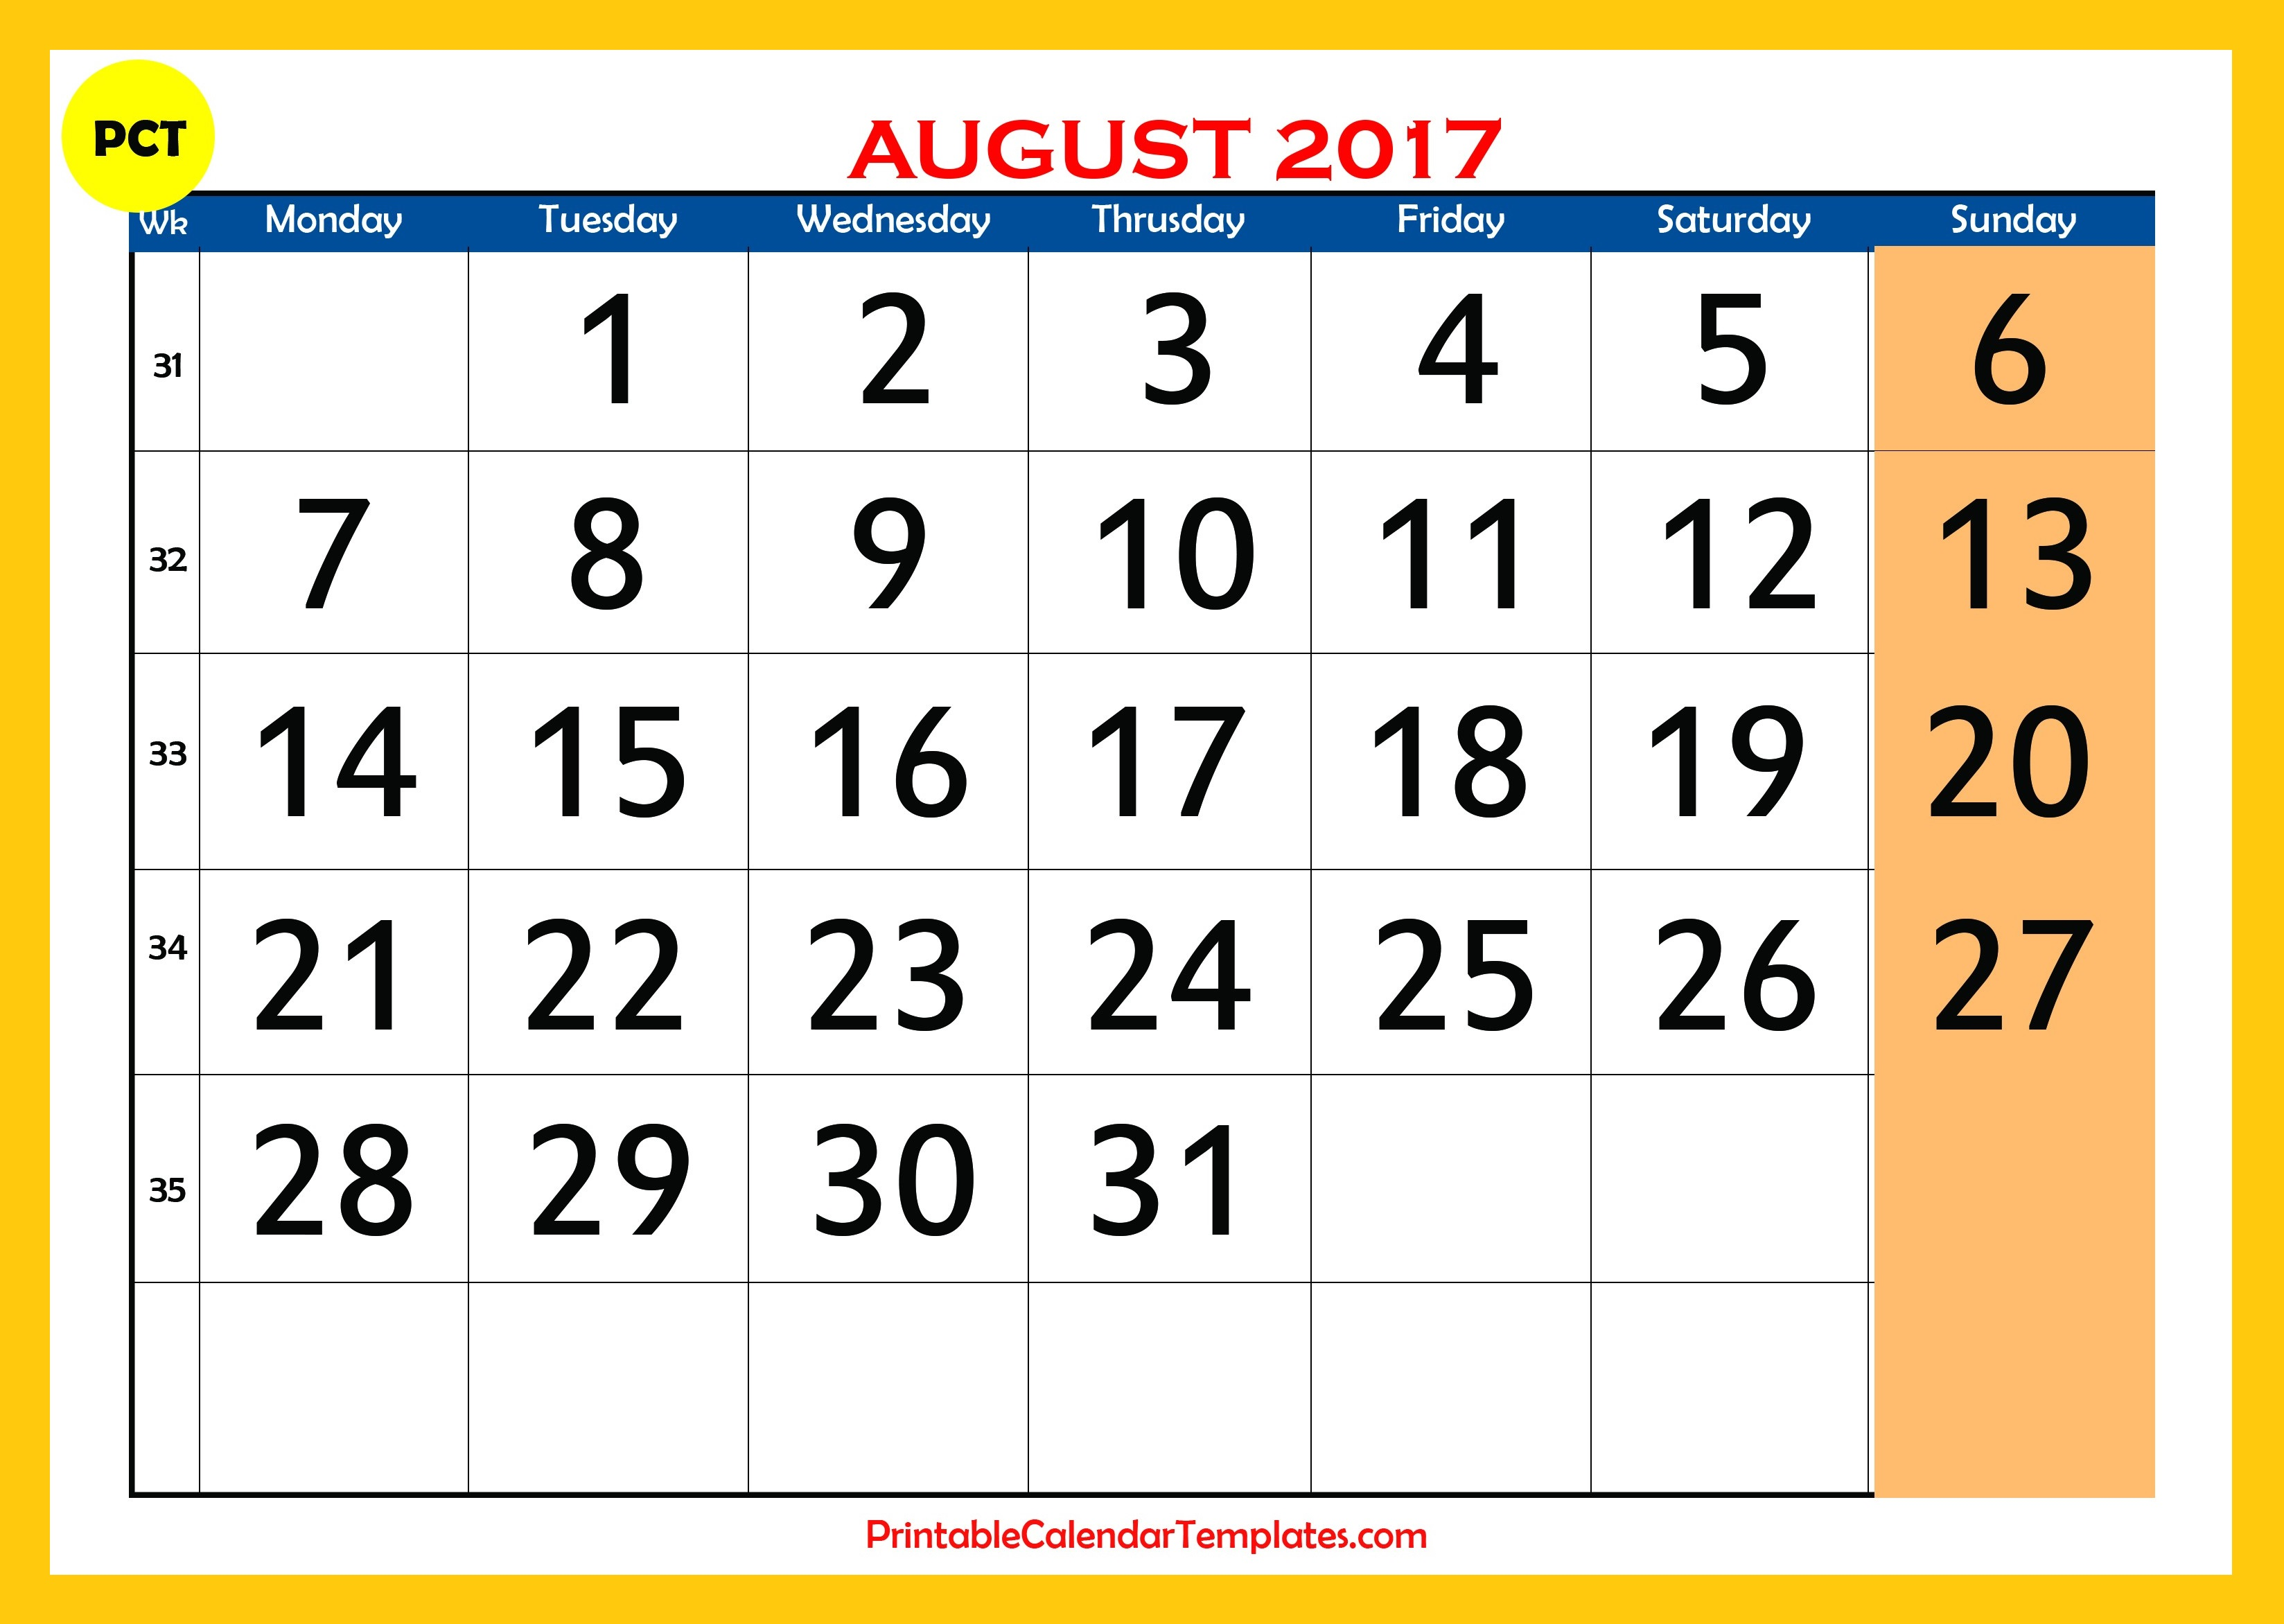 2017 Monthly Calendar - CalendarLabs